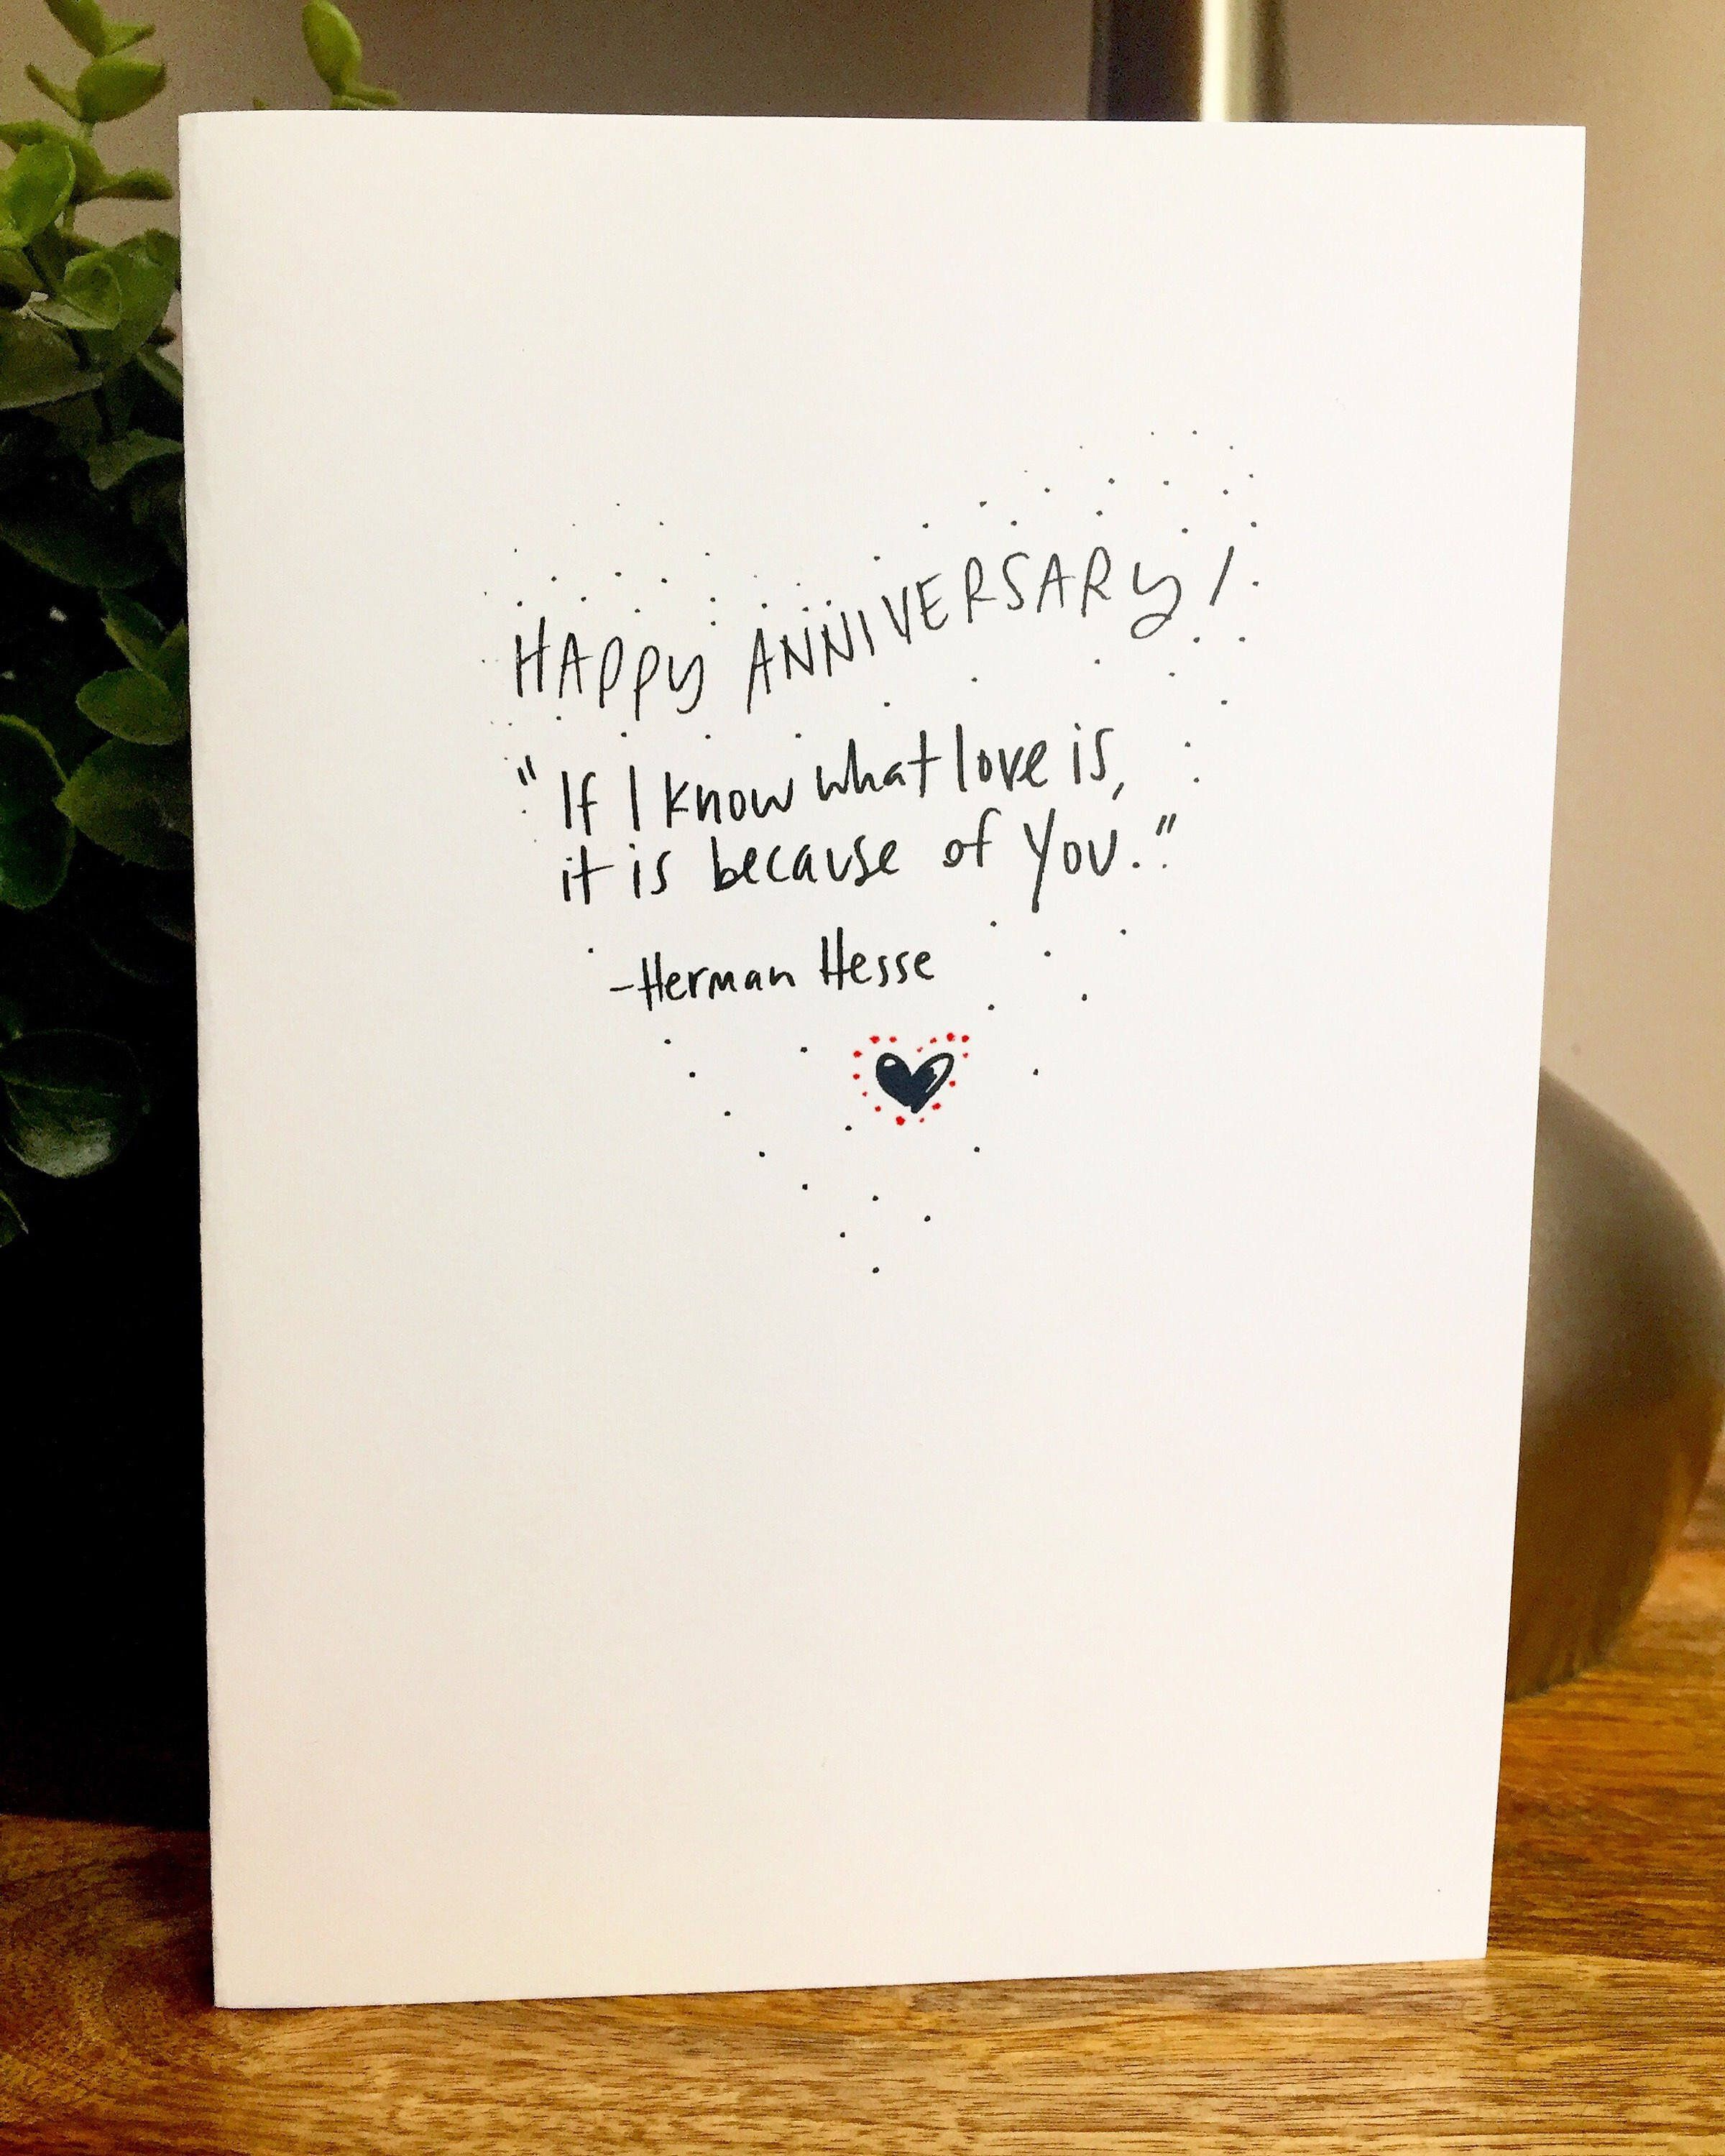 I Know What Love Is One Year Anniversary Card For Her Paper